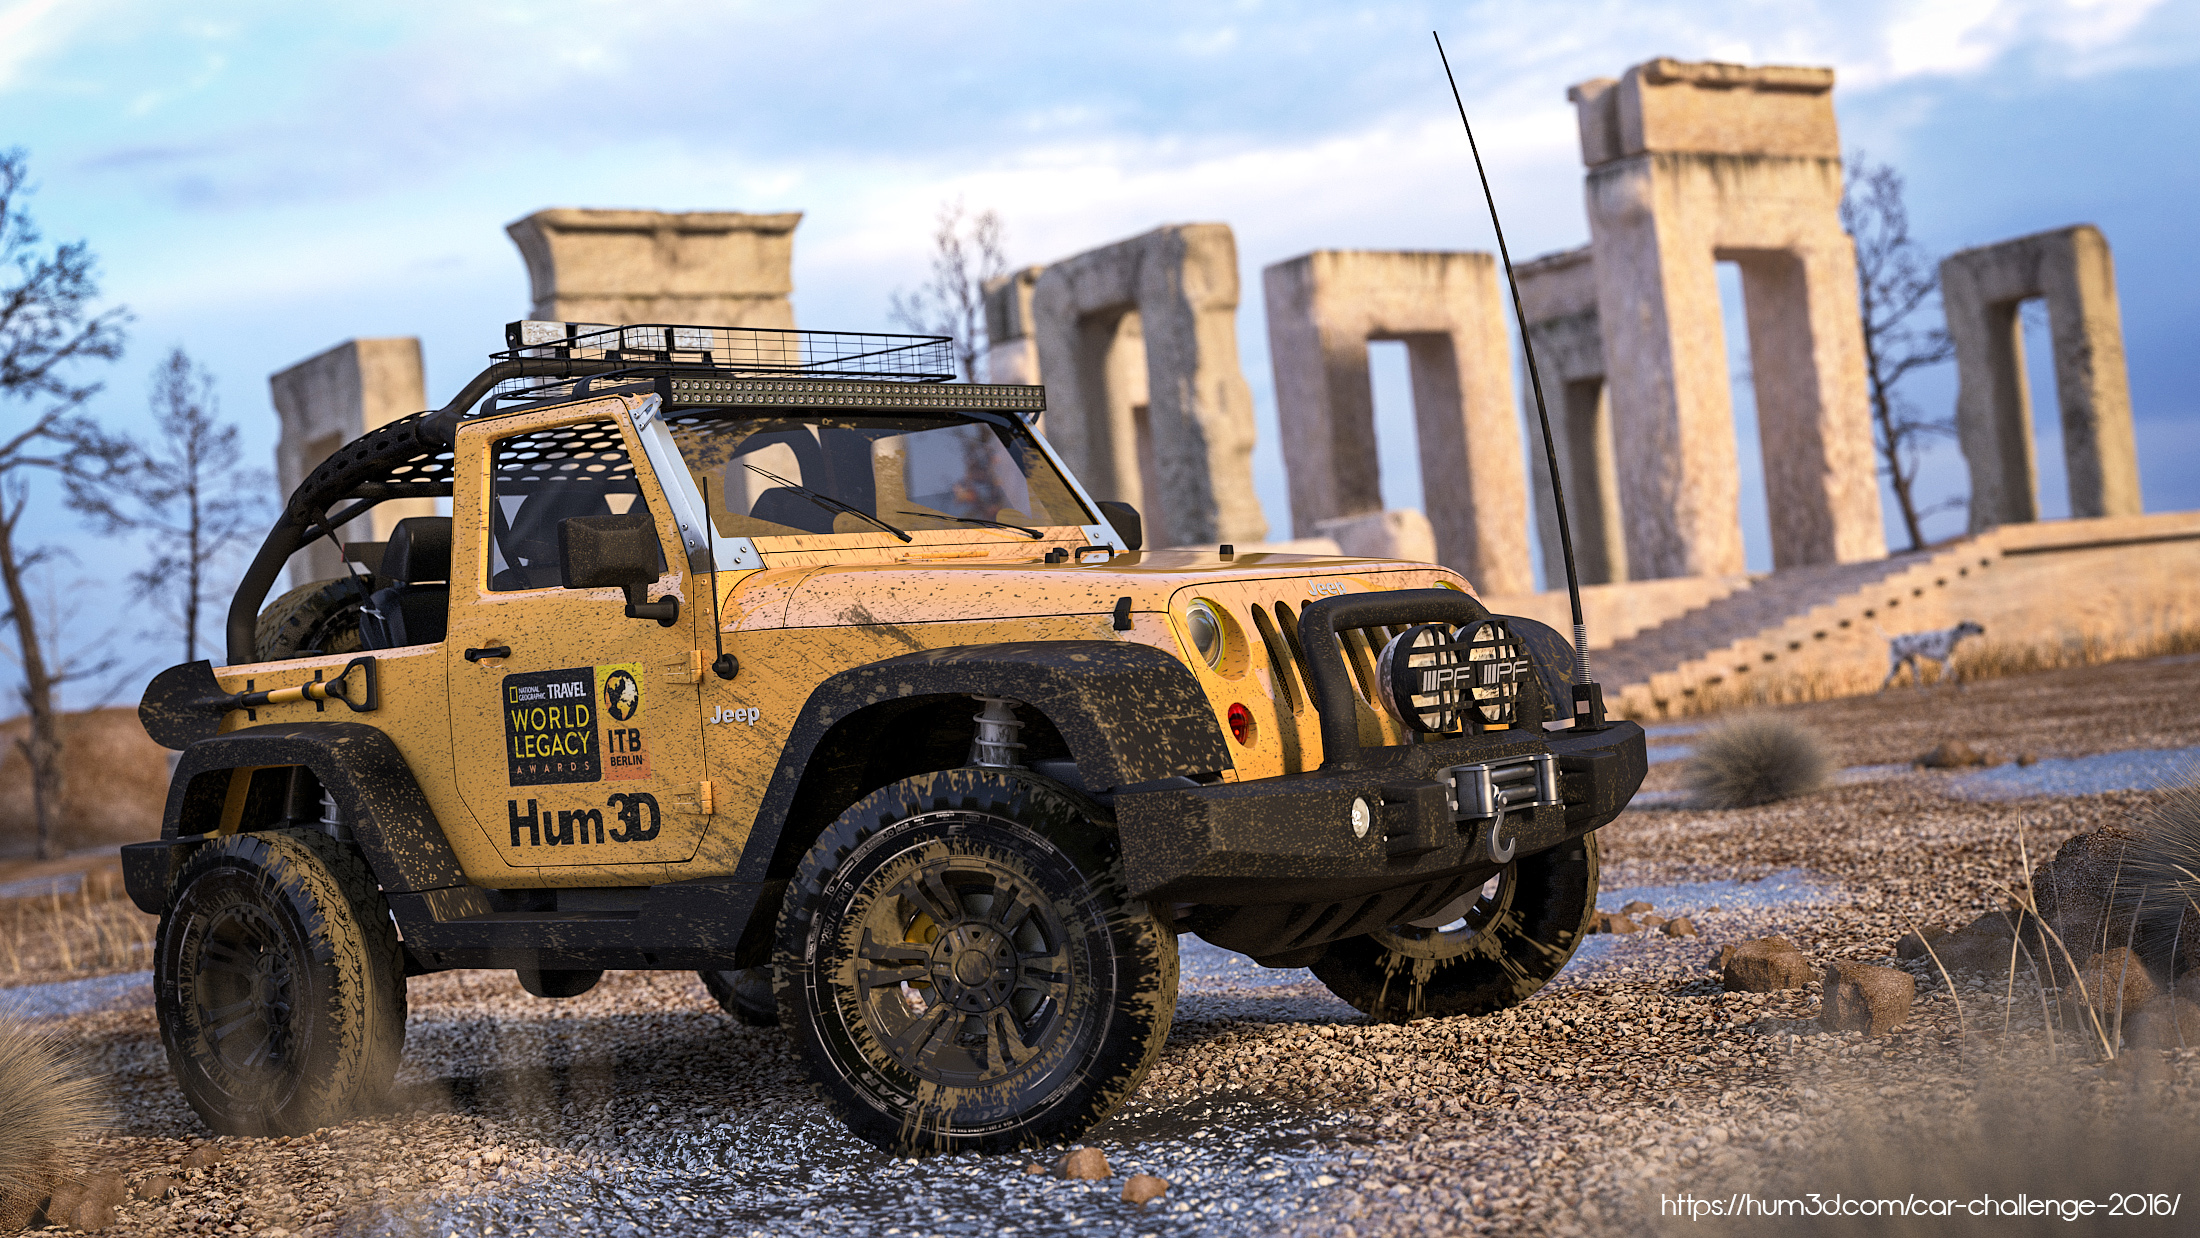 Jeep Wrangler Rubicon in Persepolis 3d art